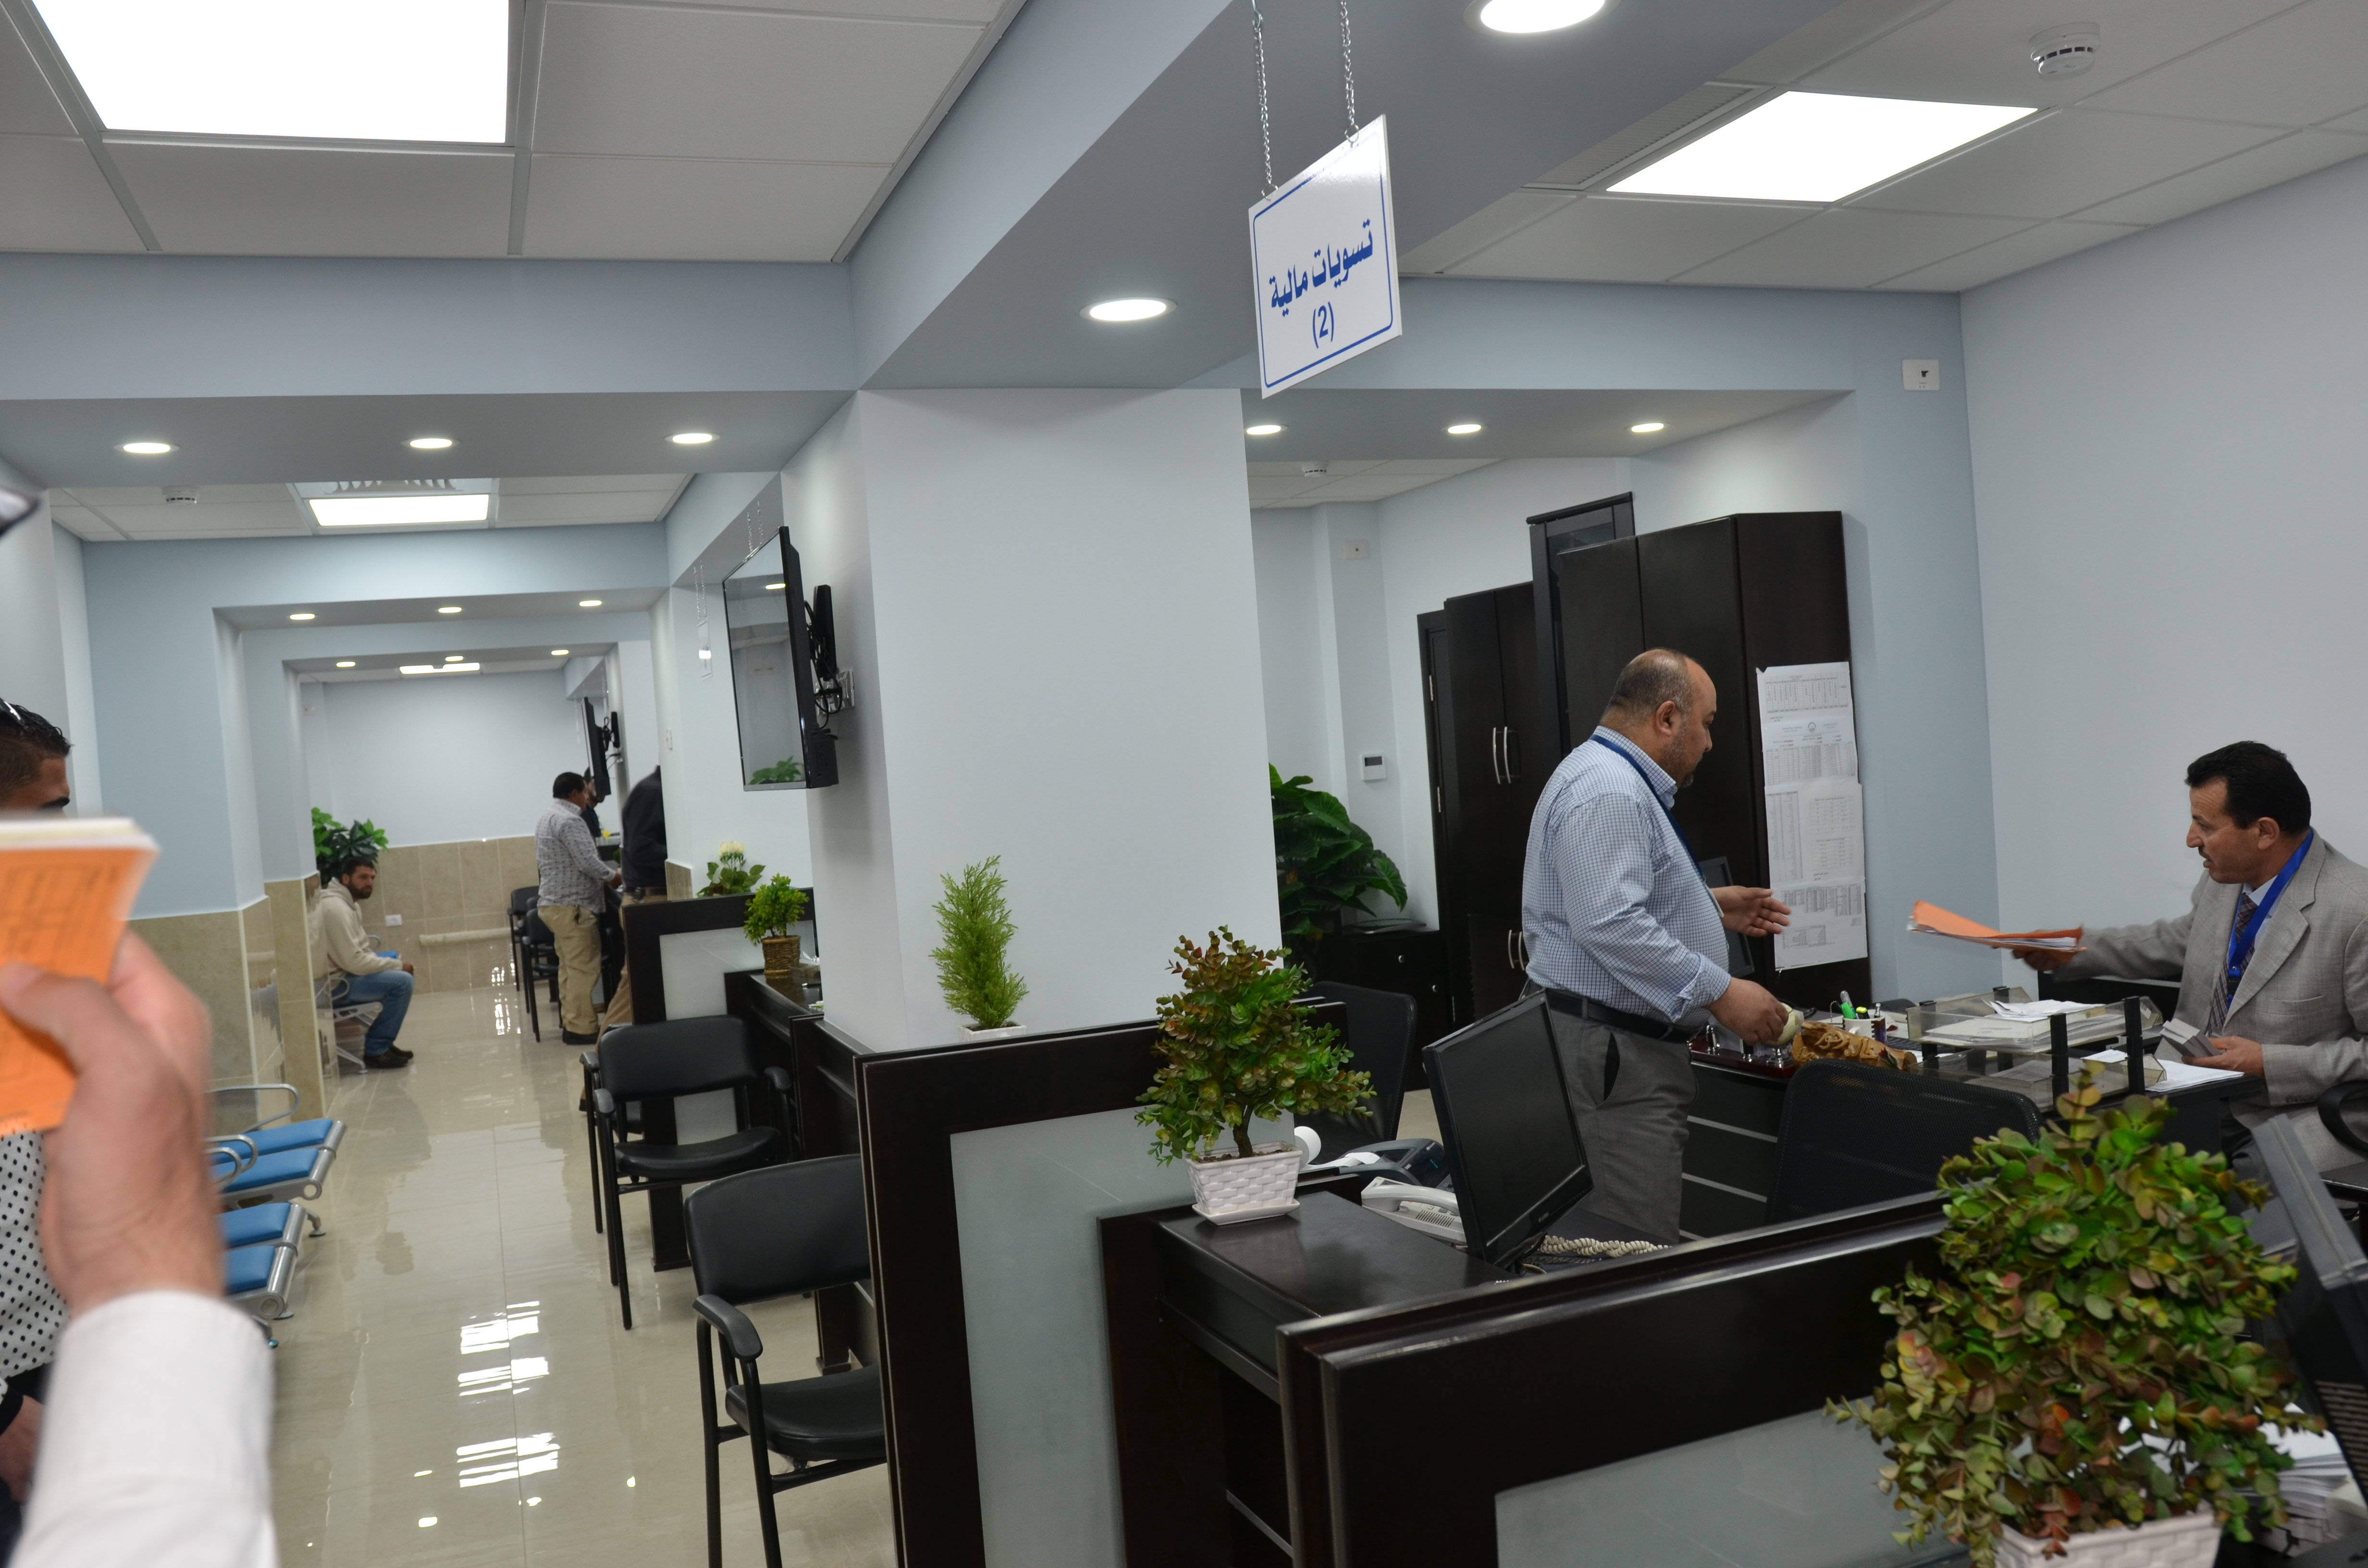 Customer Services Department